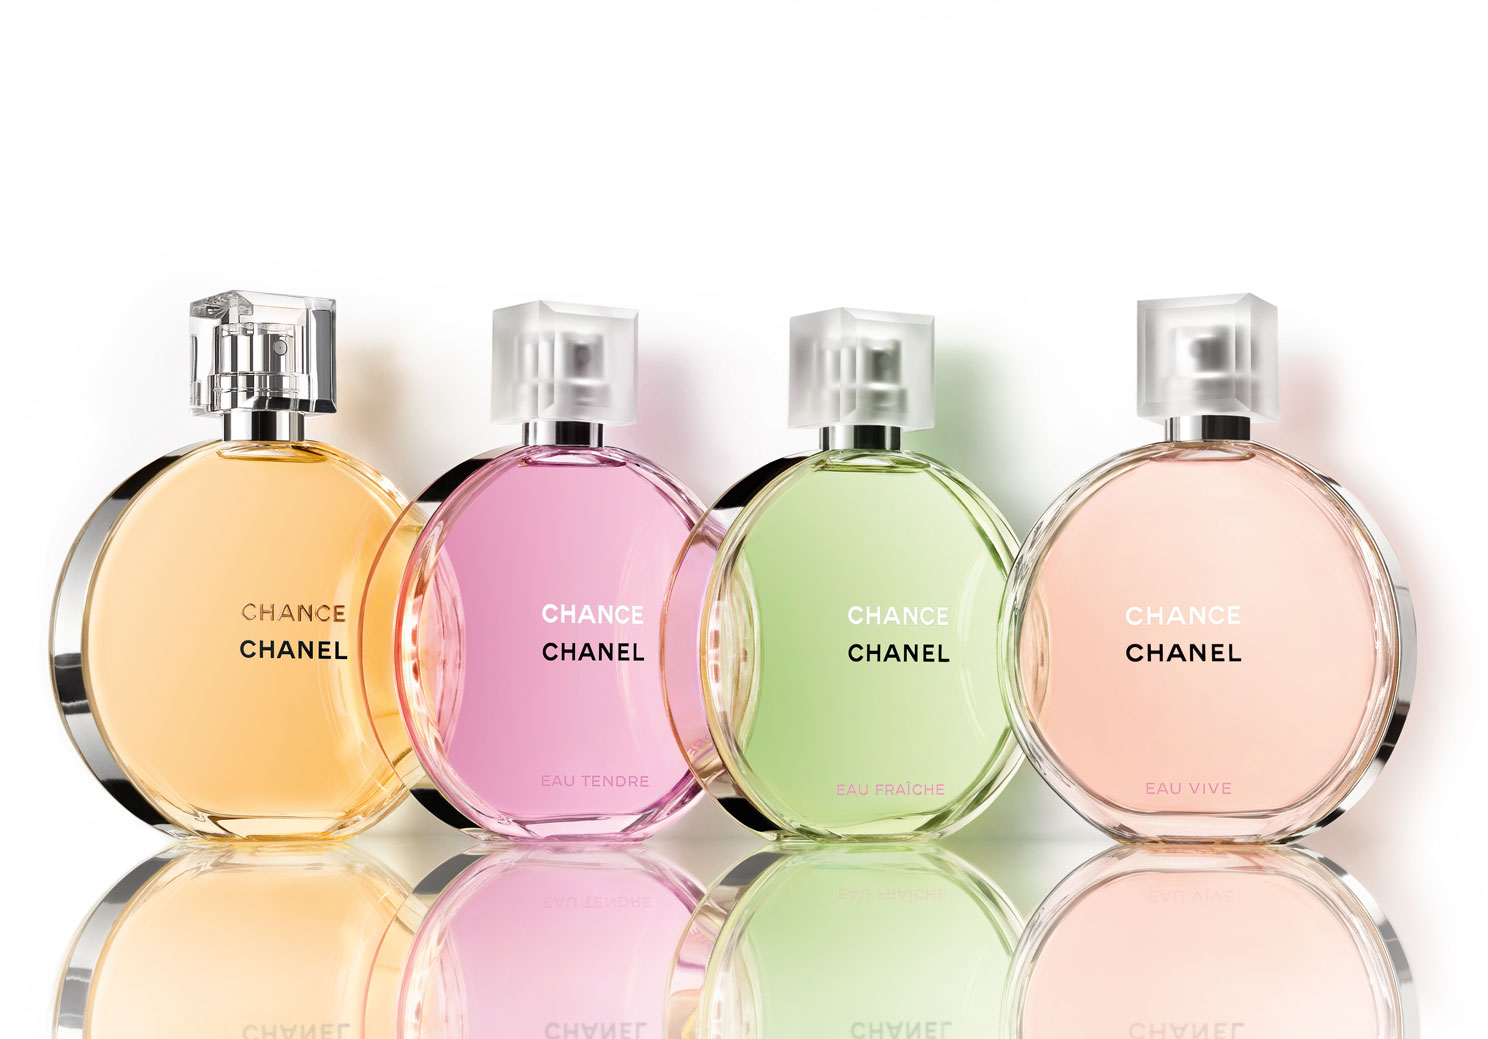 Chance series - from classic to Chanel Tender 1